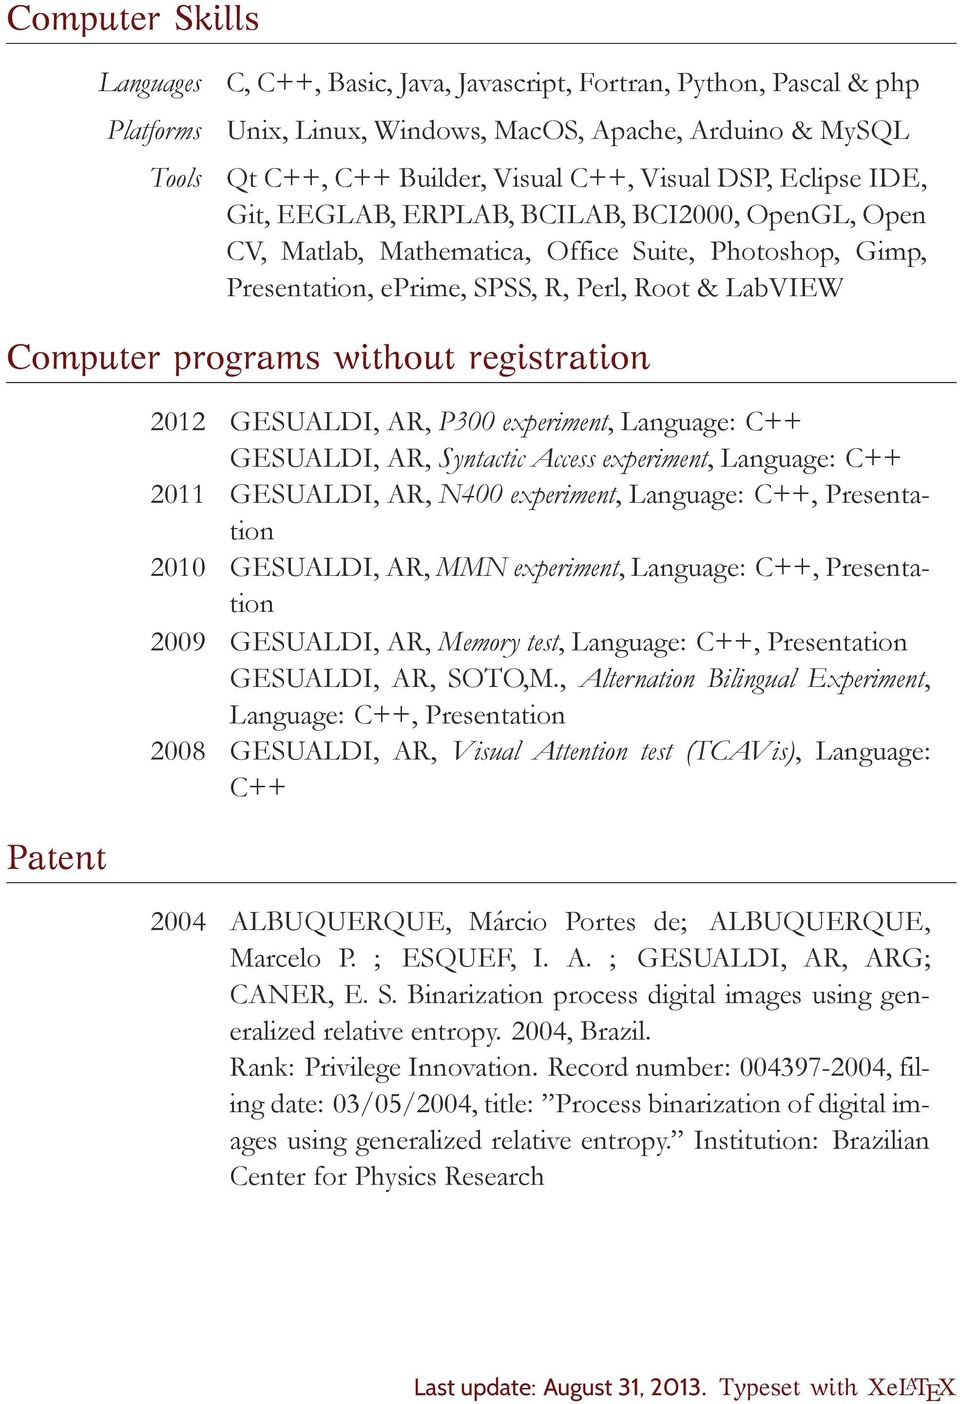 without registration Patent 2012 GESUALDI, AR, P300 experiment, Language: C++ GESUALDI, AR, Syntactic Access experiment, Language: C++ 2011 GESUALDI, AR, N400 experiment, Language: C++, Presentation